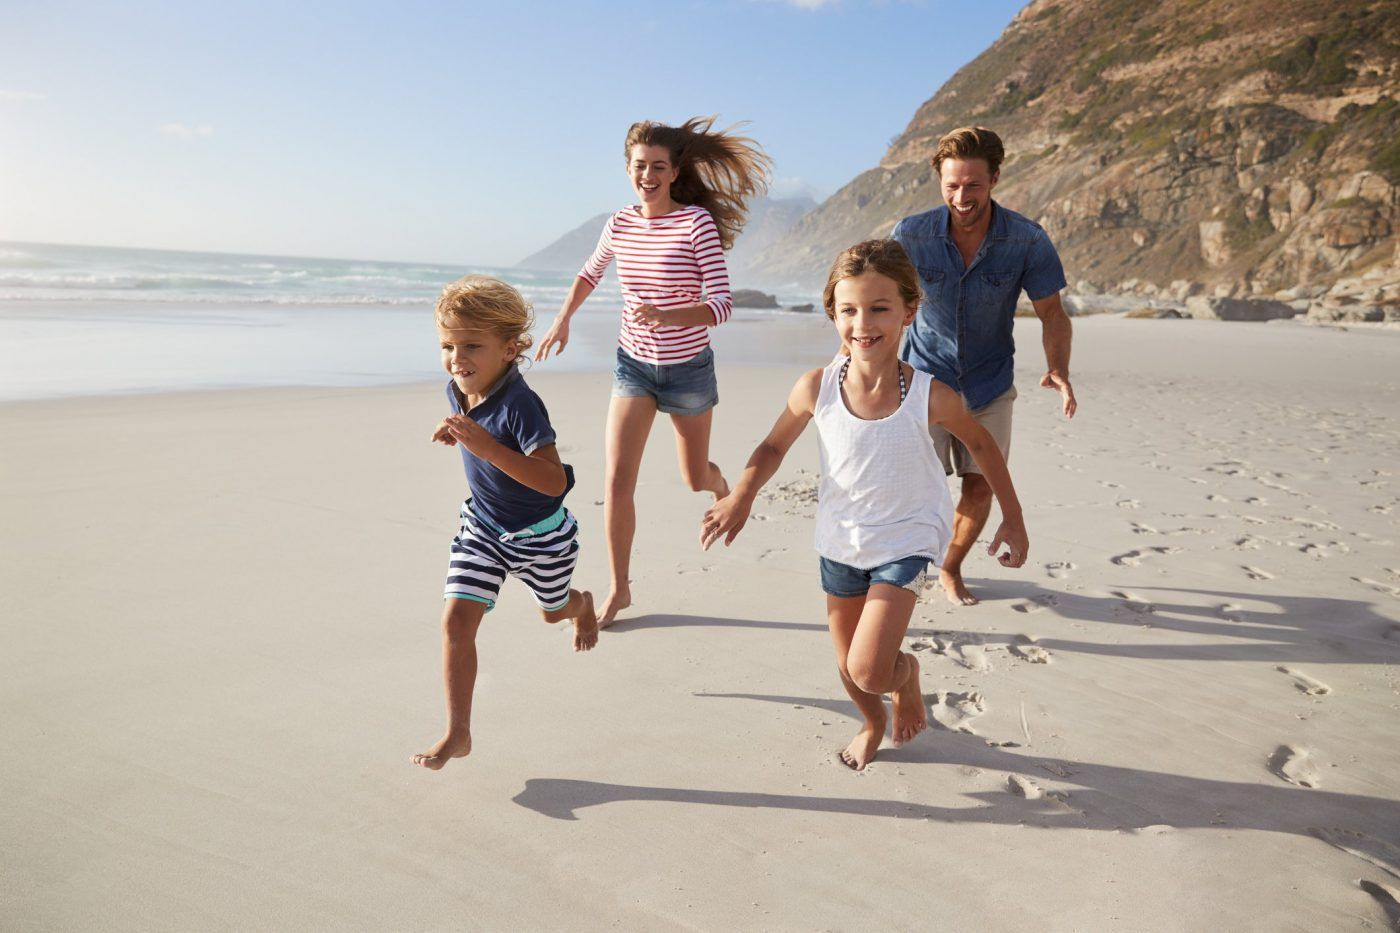 family running through sandy beach together during daytime